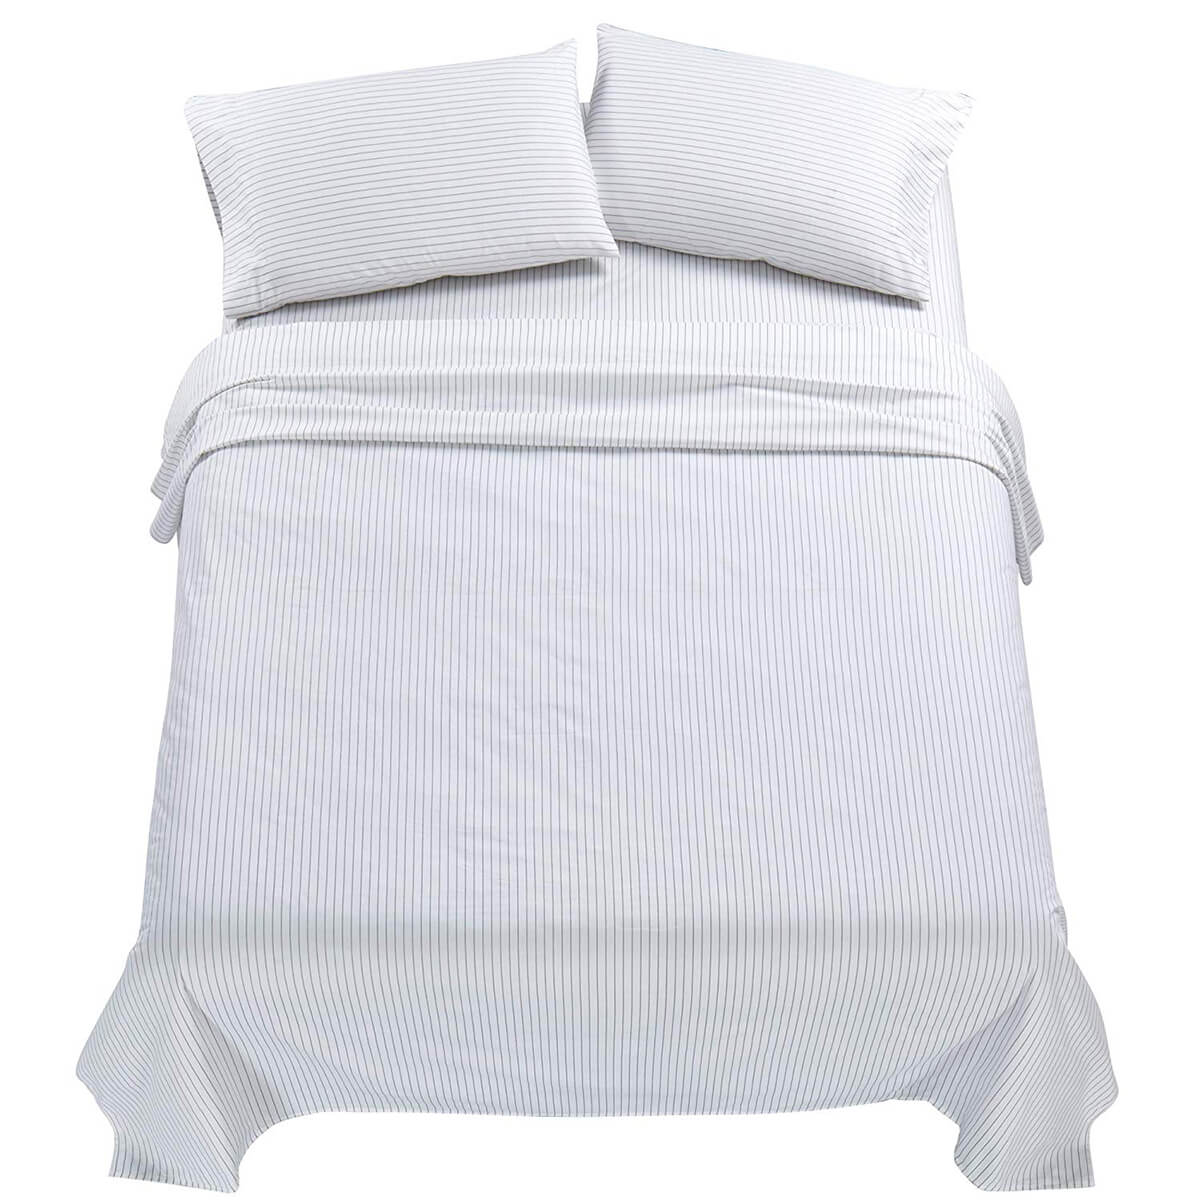 Luxury Pure Natural 4 Piece Cotton Sheet Set